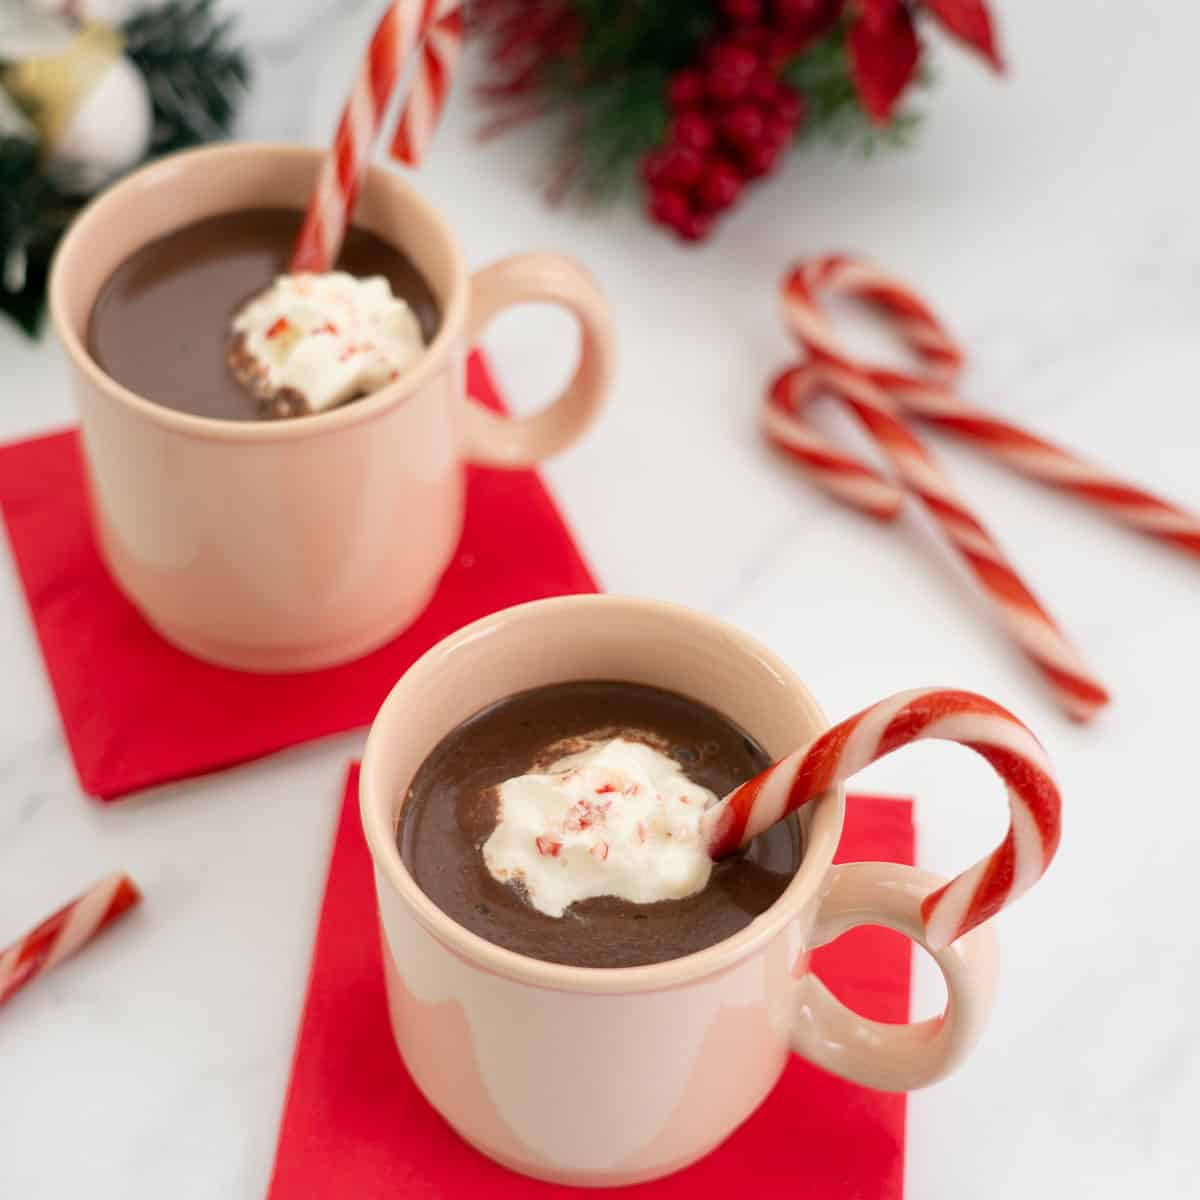 2 mugs of  hot chocolate topped with whipped cream, crushed candy canes and a candy cane to stir